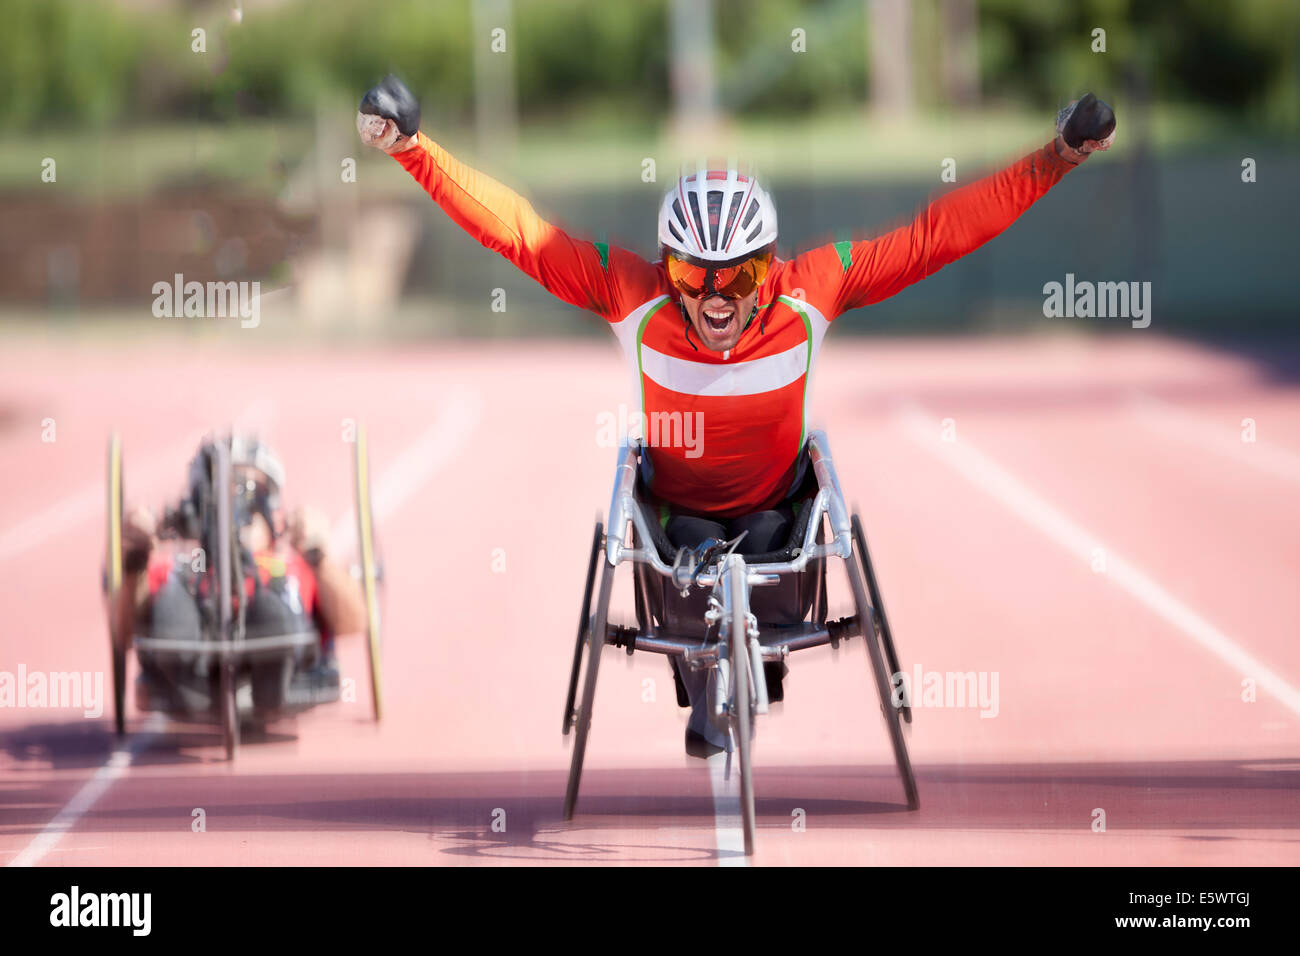 Athlete at finishing line in para-athletic competition Stock Photo